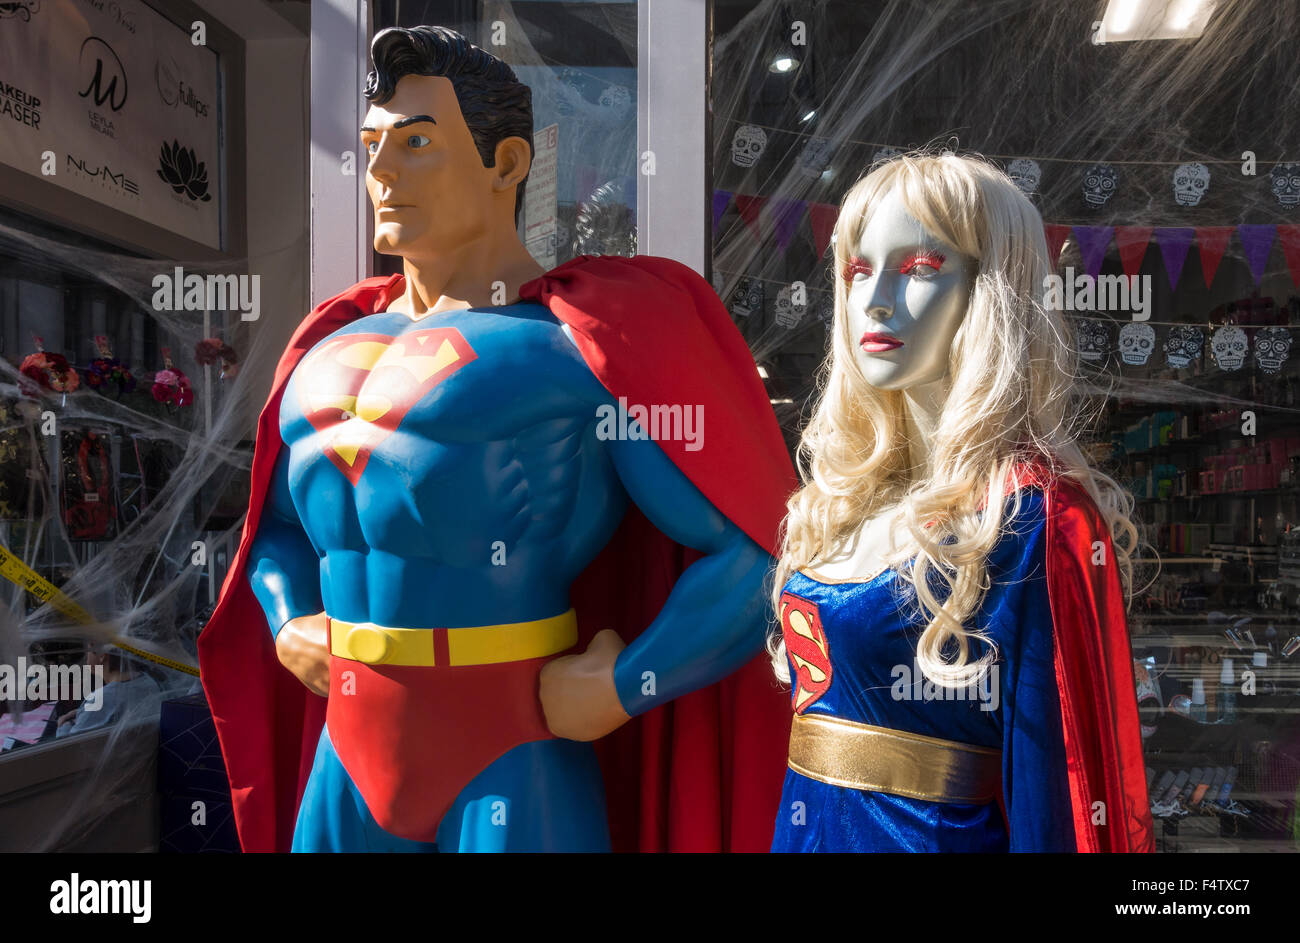 Life-size plastic statues of Superman and Supergirl outside a specialty store - Stock Image